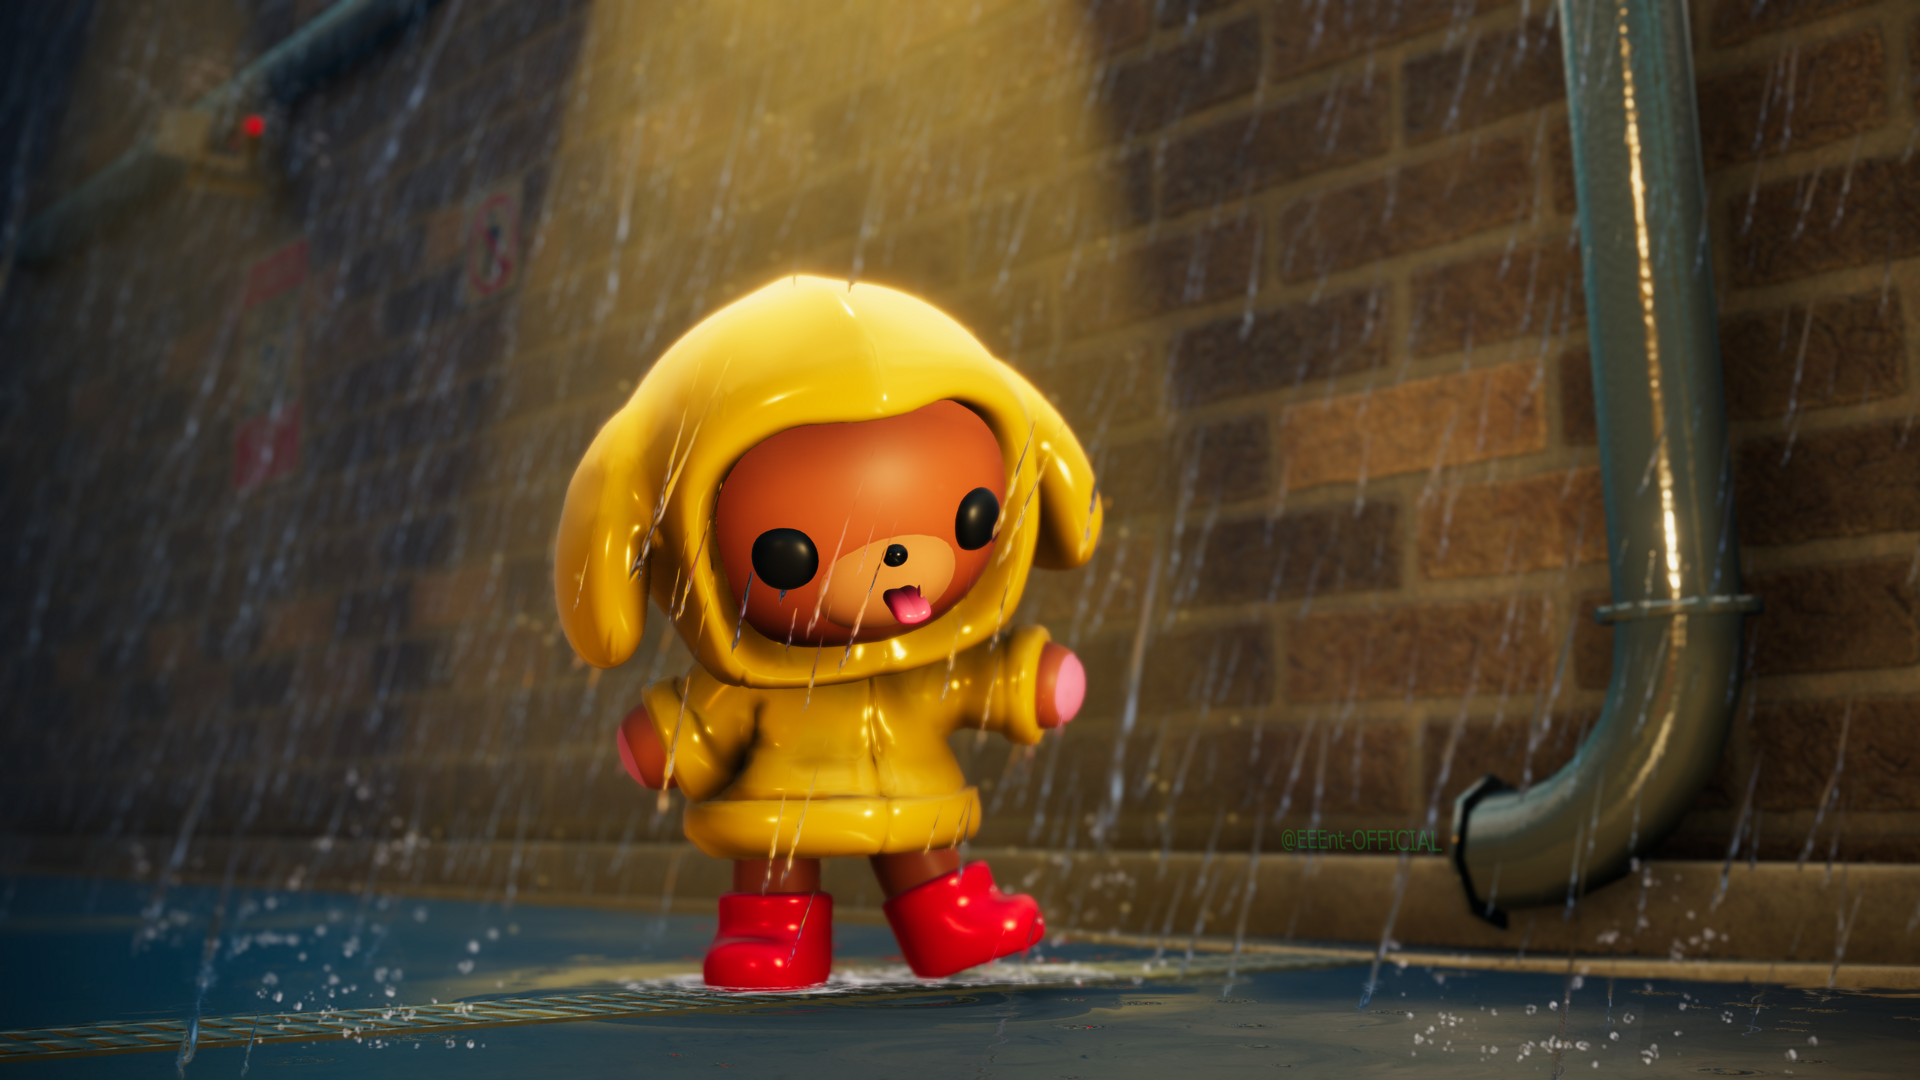 Raincoat Puppy Chibi 3_Tweaked_1920x1080.png